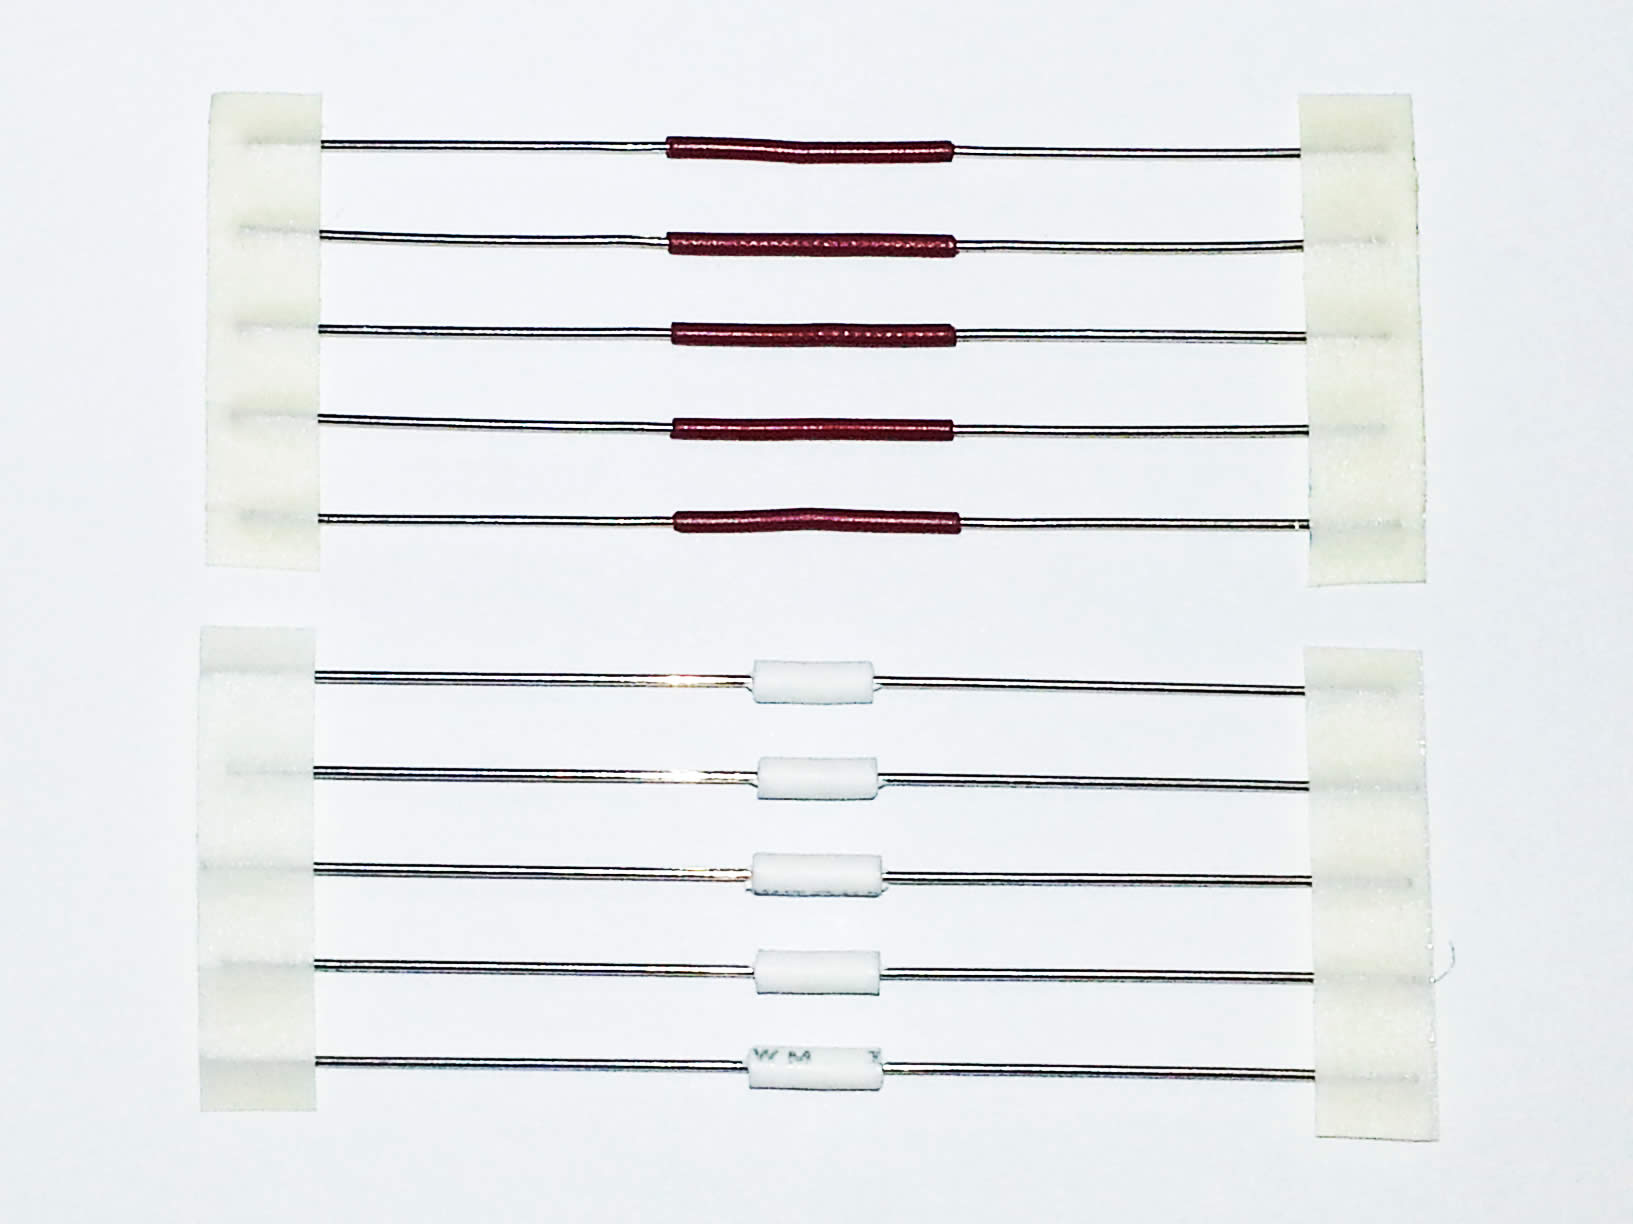 Insulated Axial Jumper Wire